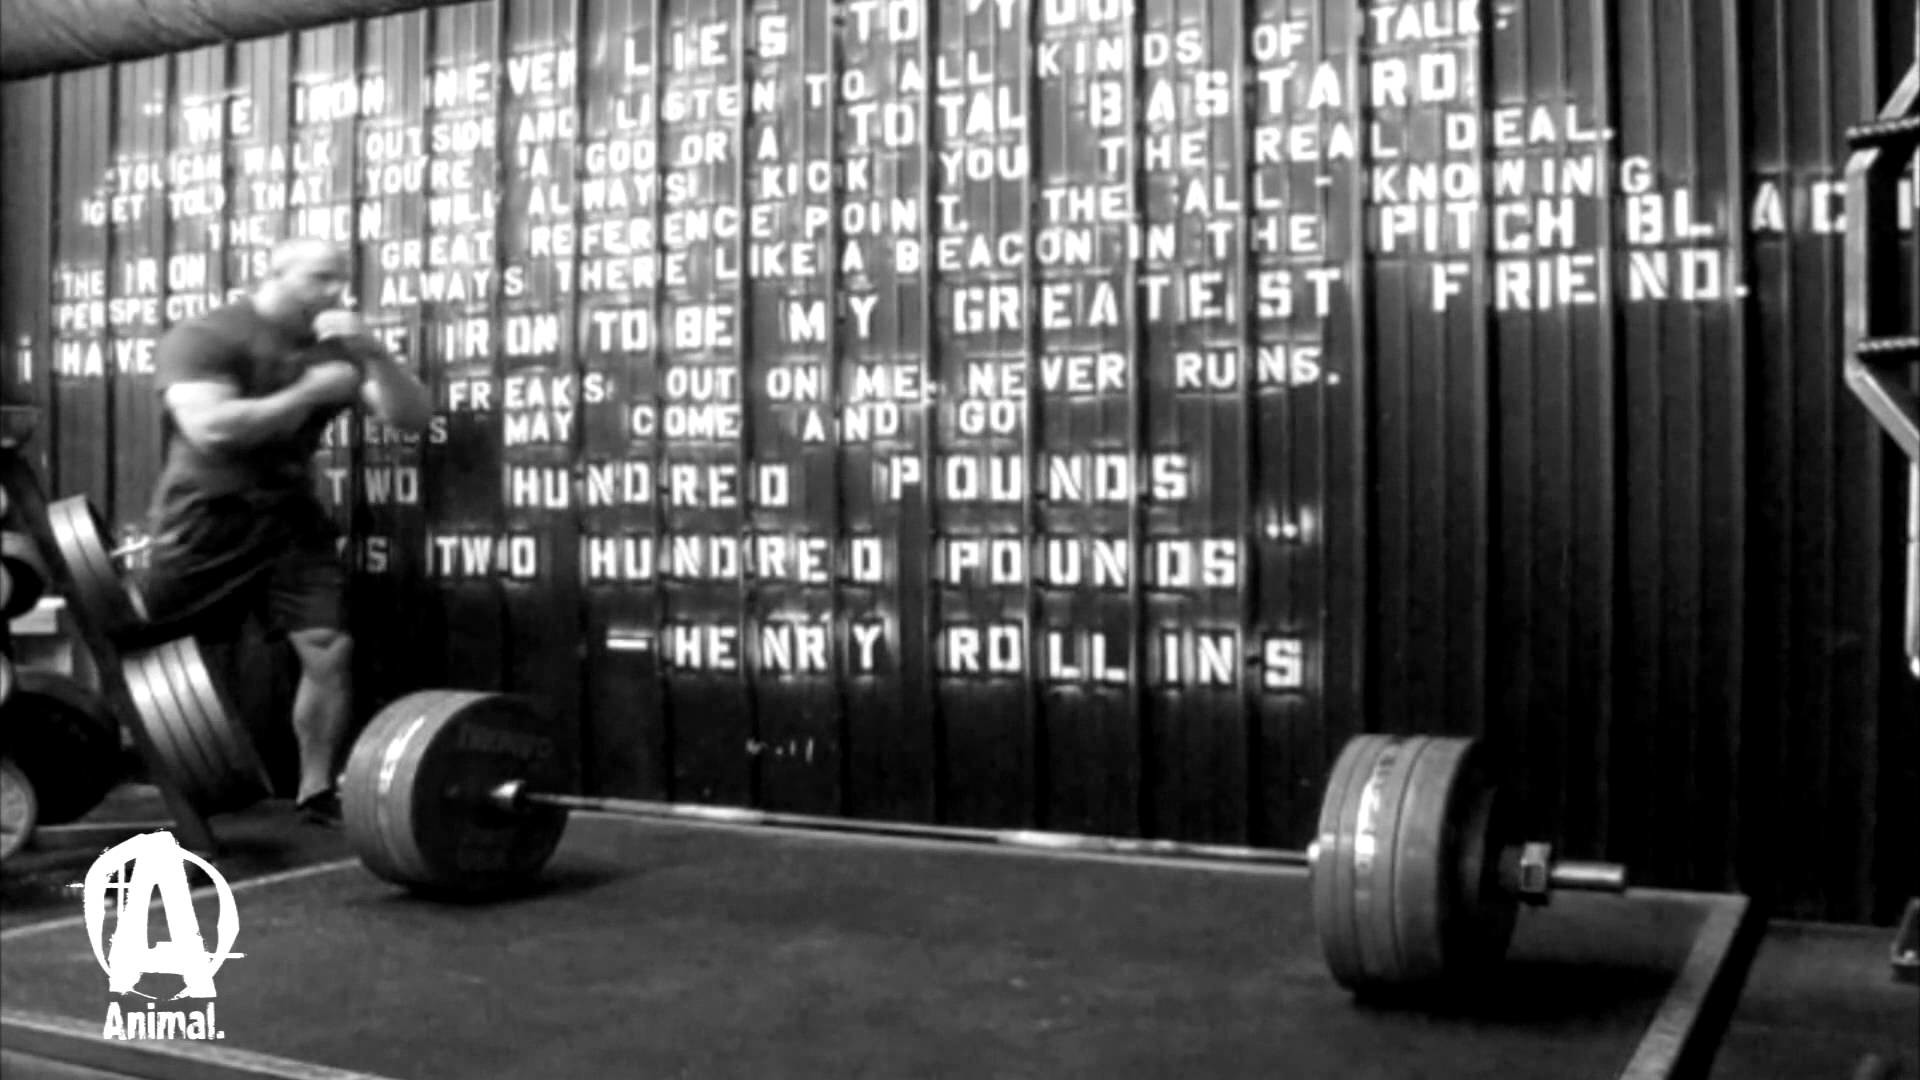 Powerlifting Motivational Wallpapers 82 Images